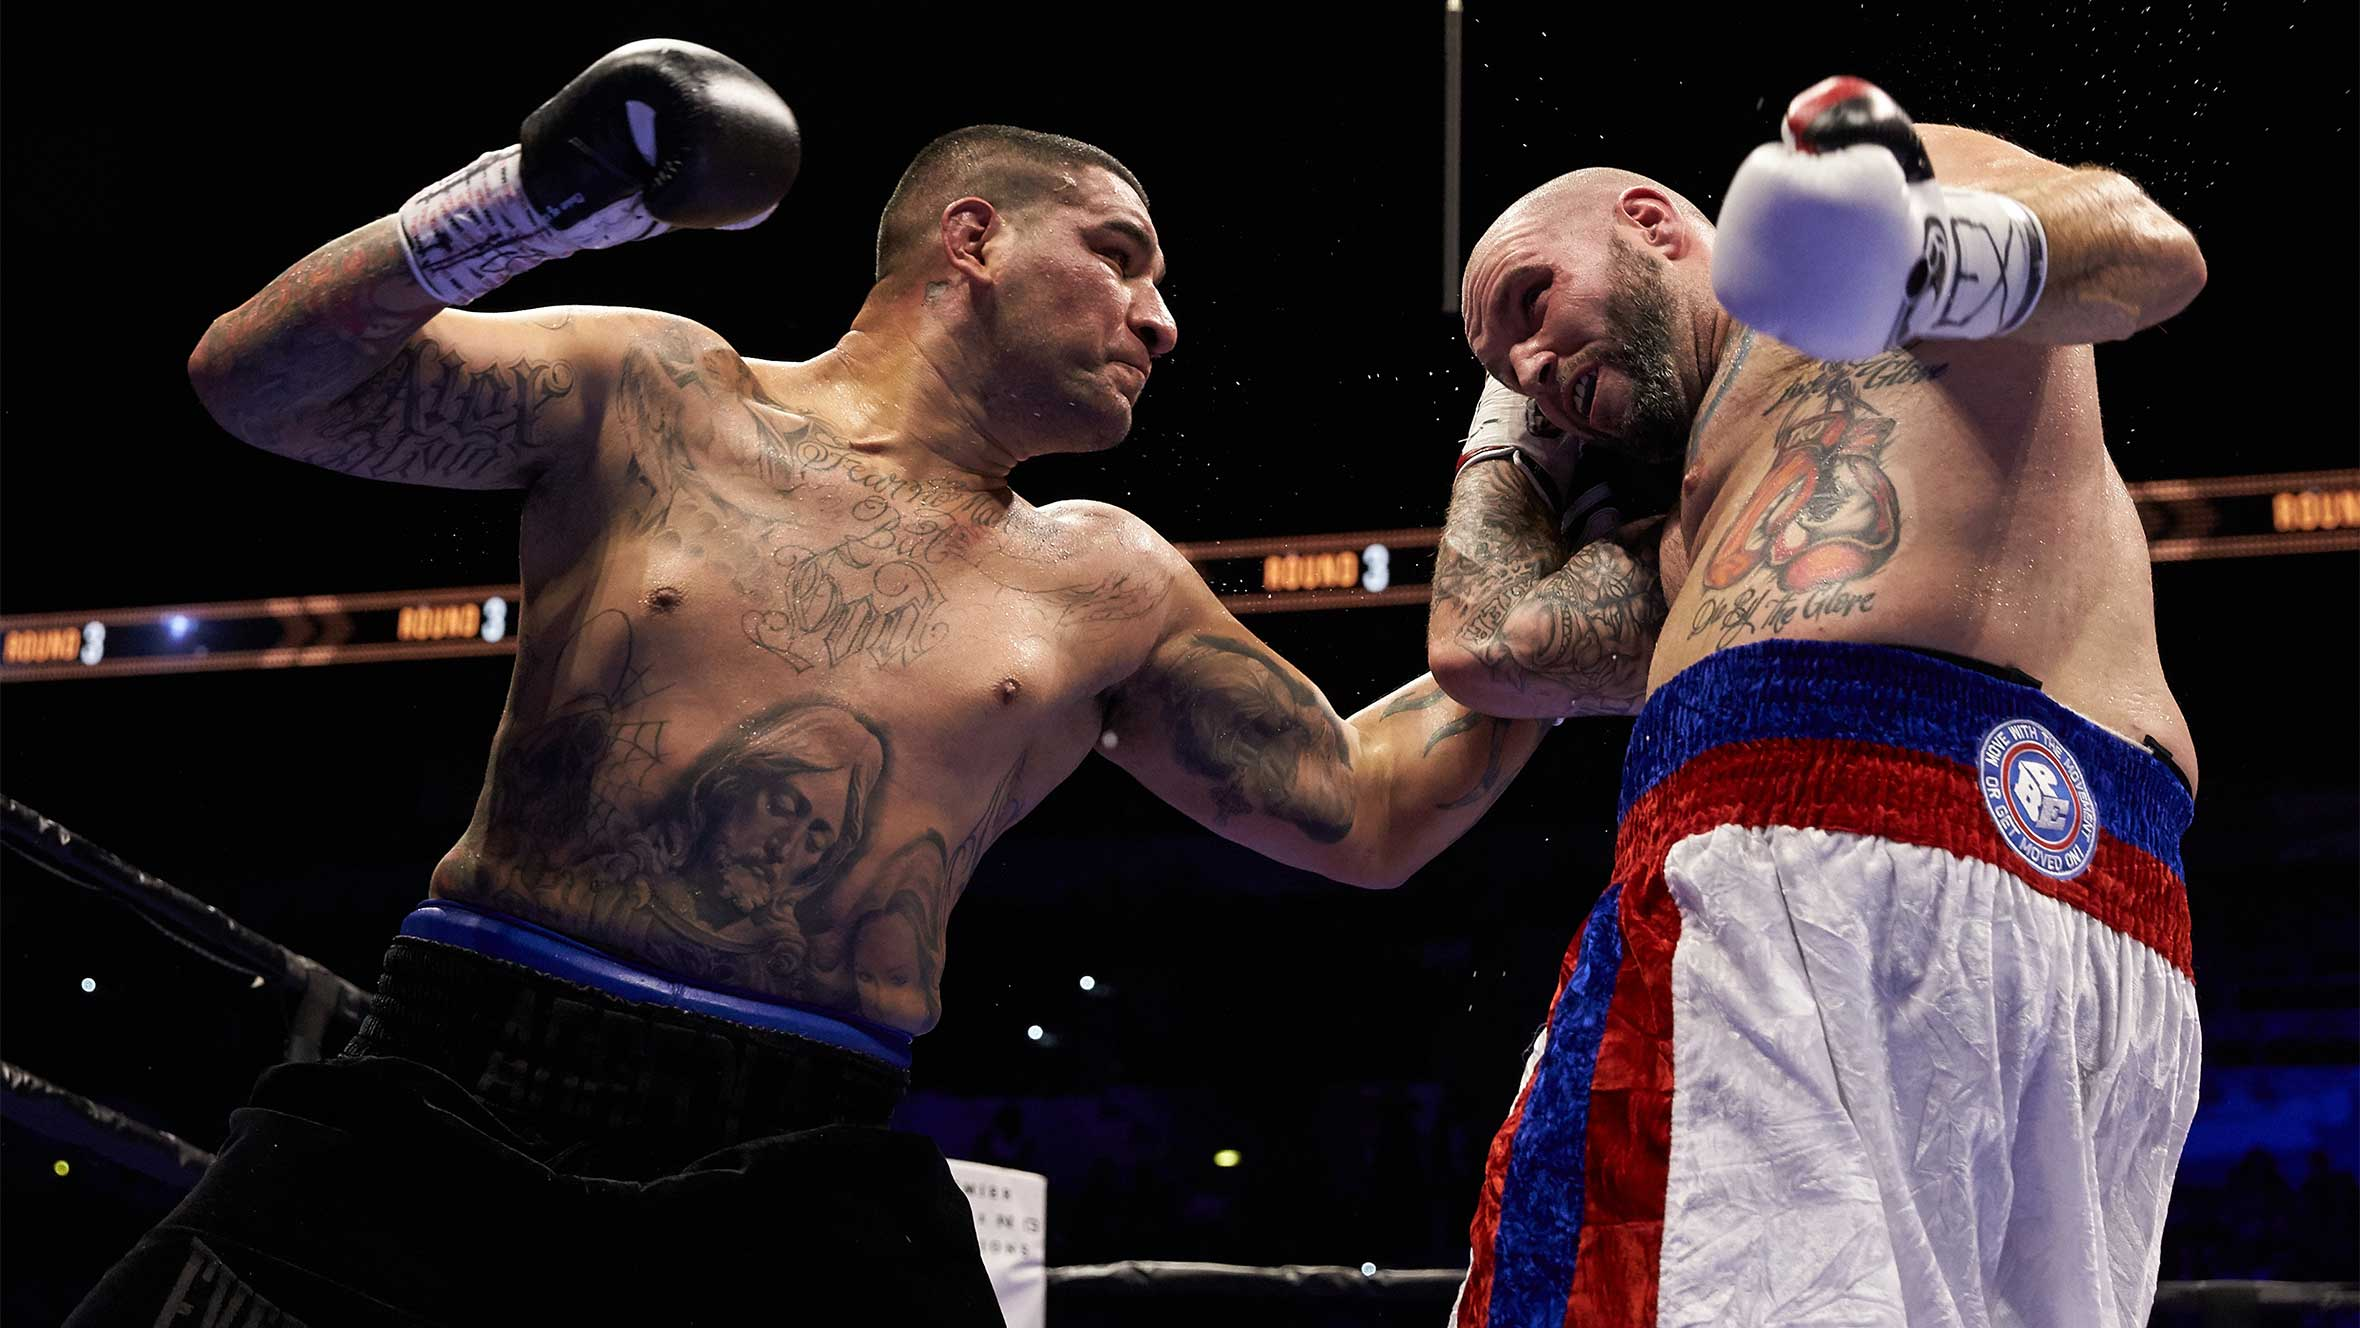 Chris Arreola - American heavyweight boxer of Mexican descent